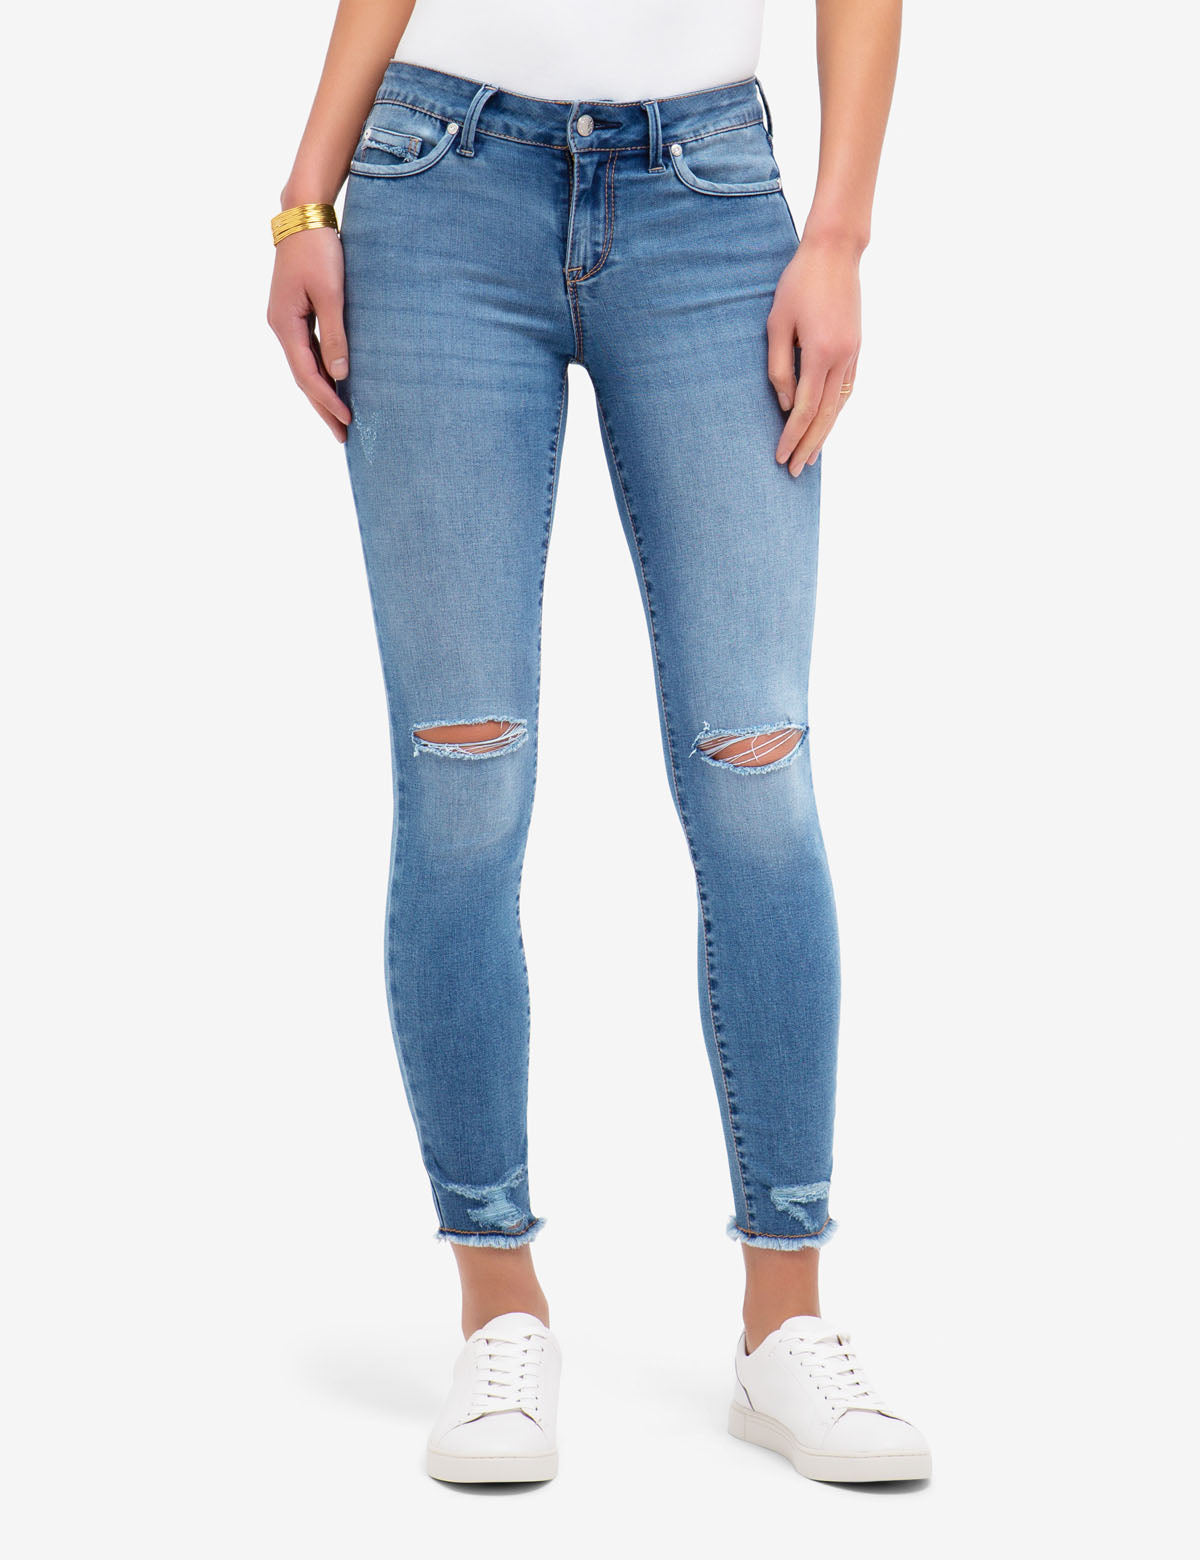 REPREVE® MID RISE FRAYED SKINNY JEANS